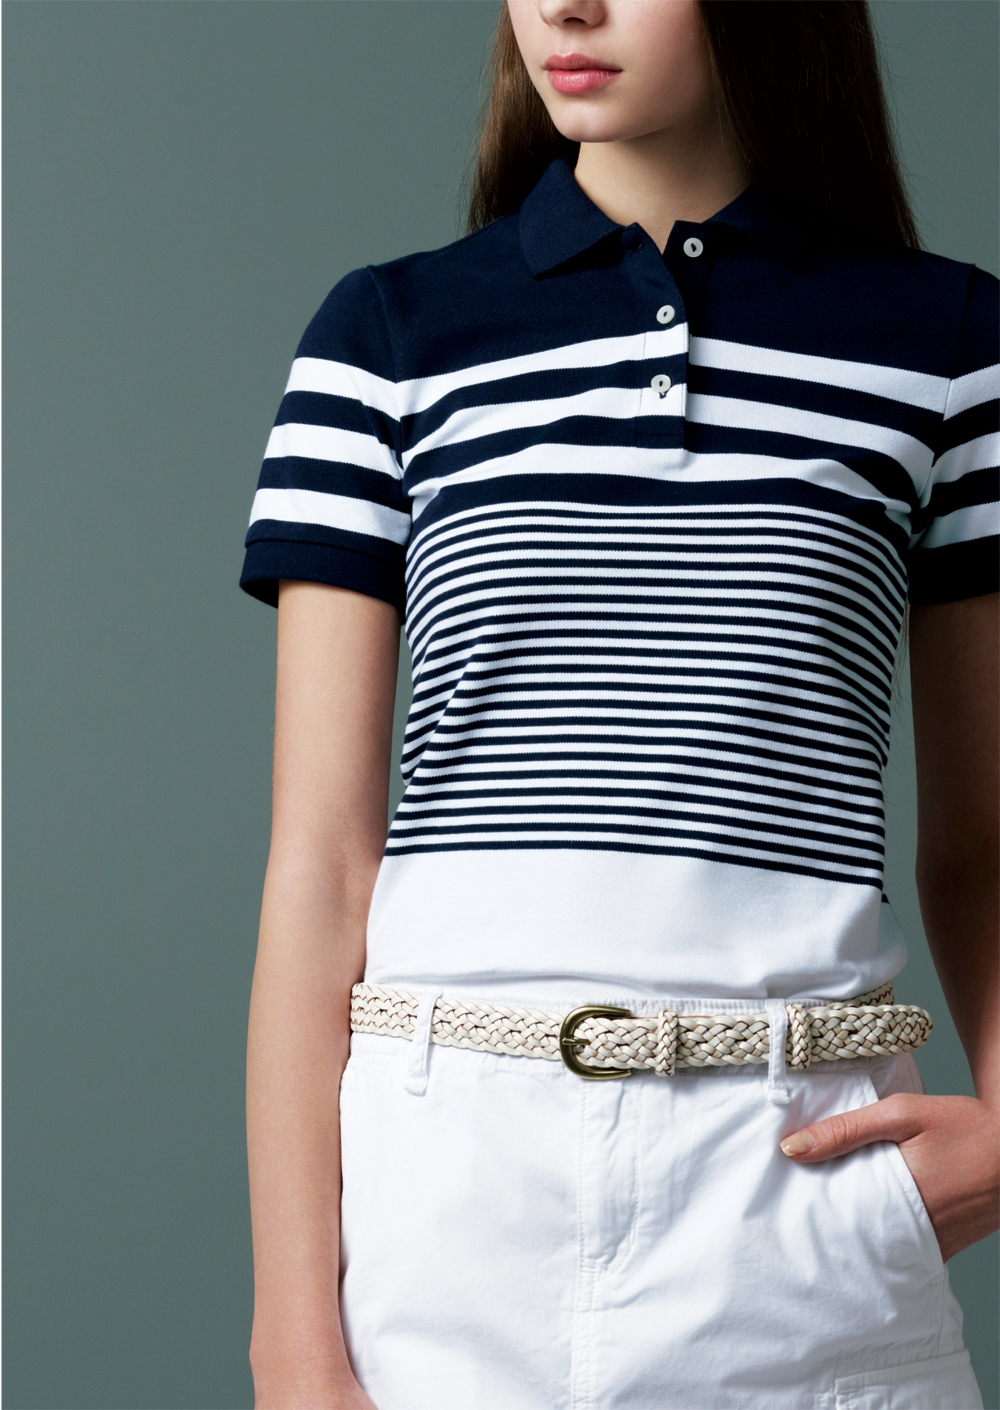 Photo: Do you know how polo shirts were originated?  The name of polo shirt was actually derived from the place of origin of the sport of polo. It was developed jointly by a French garment maker and a top-ranked tennis player at the beginning of 20th century and became the polo shirt of today.  Our Stretch Pique Short Sleeve Polo Shirt also has a long and fascinating history. We buttoned it up this summer by using high end Supima® cotton for extra softness, added UV-blocking function and stretchiness for the ease of movement. Color variations and refined designs like three front buttons and flat-cut collar shape up this garment to an attractive piece.  Yes, you can take all these for granted in just one polo shirt.